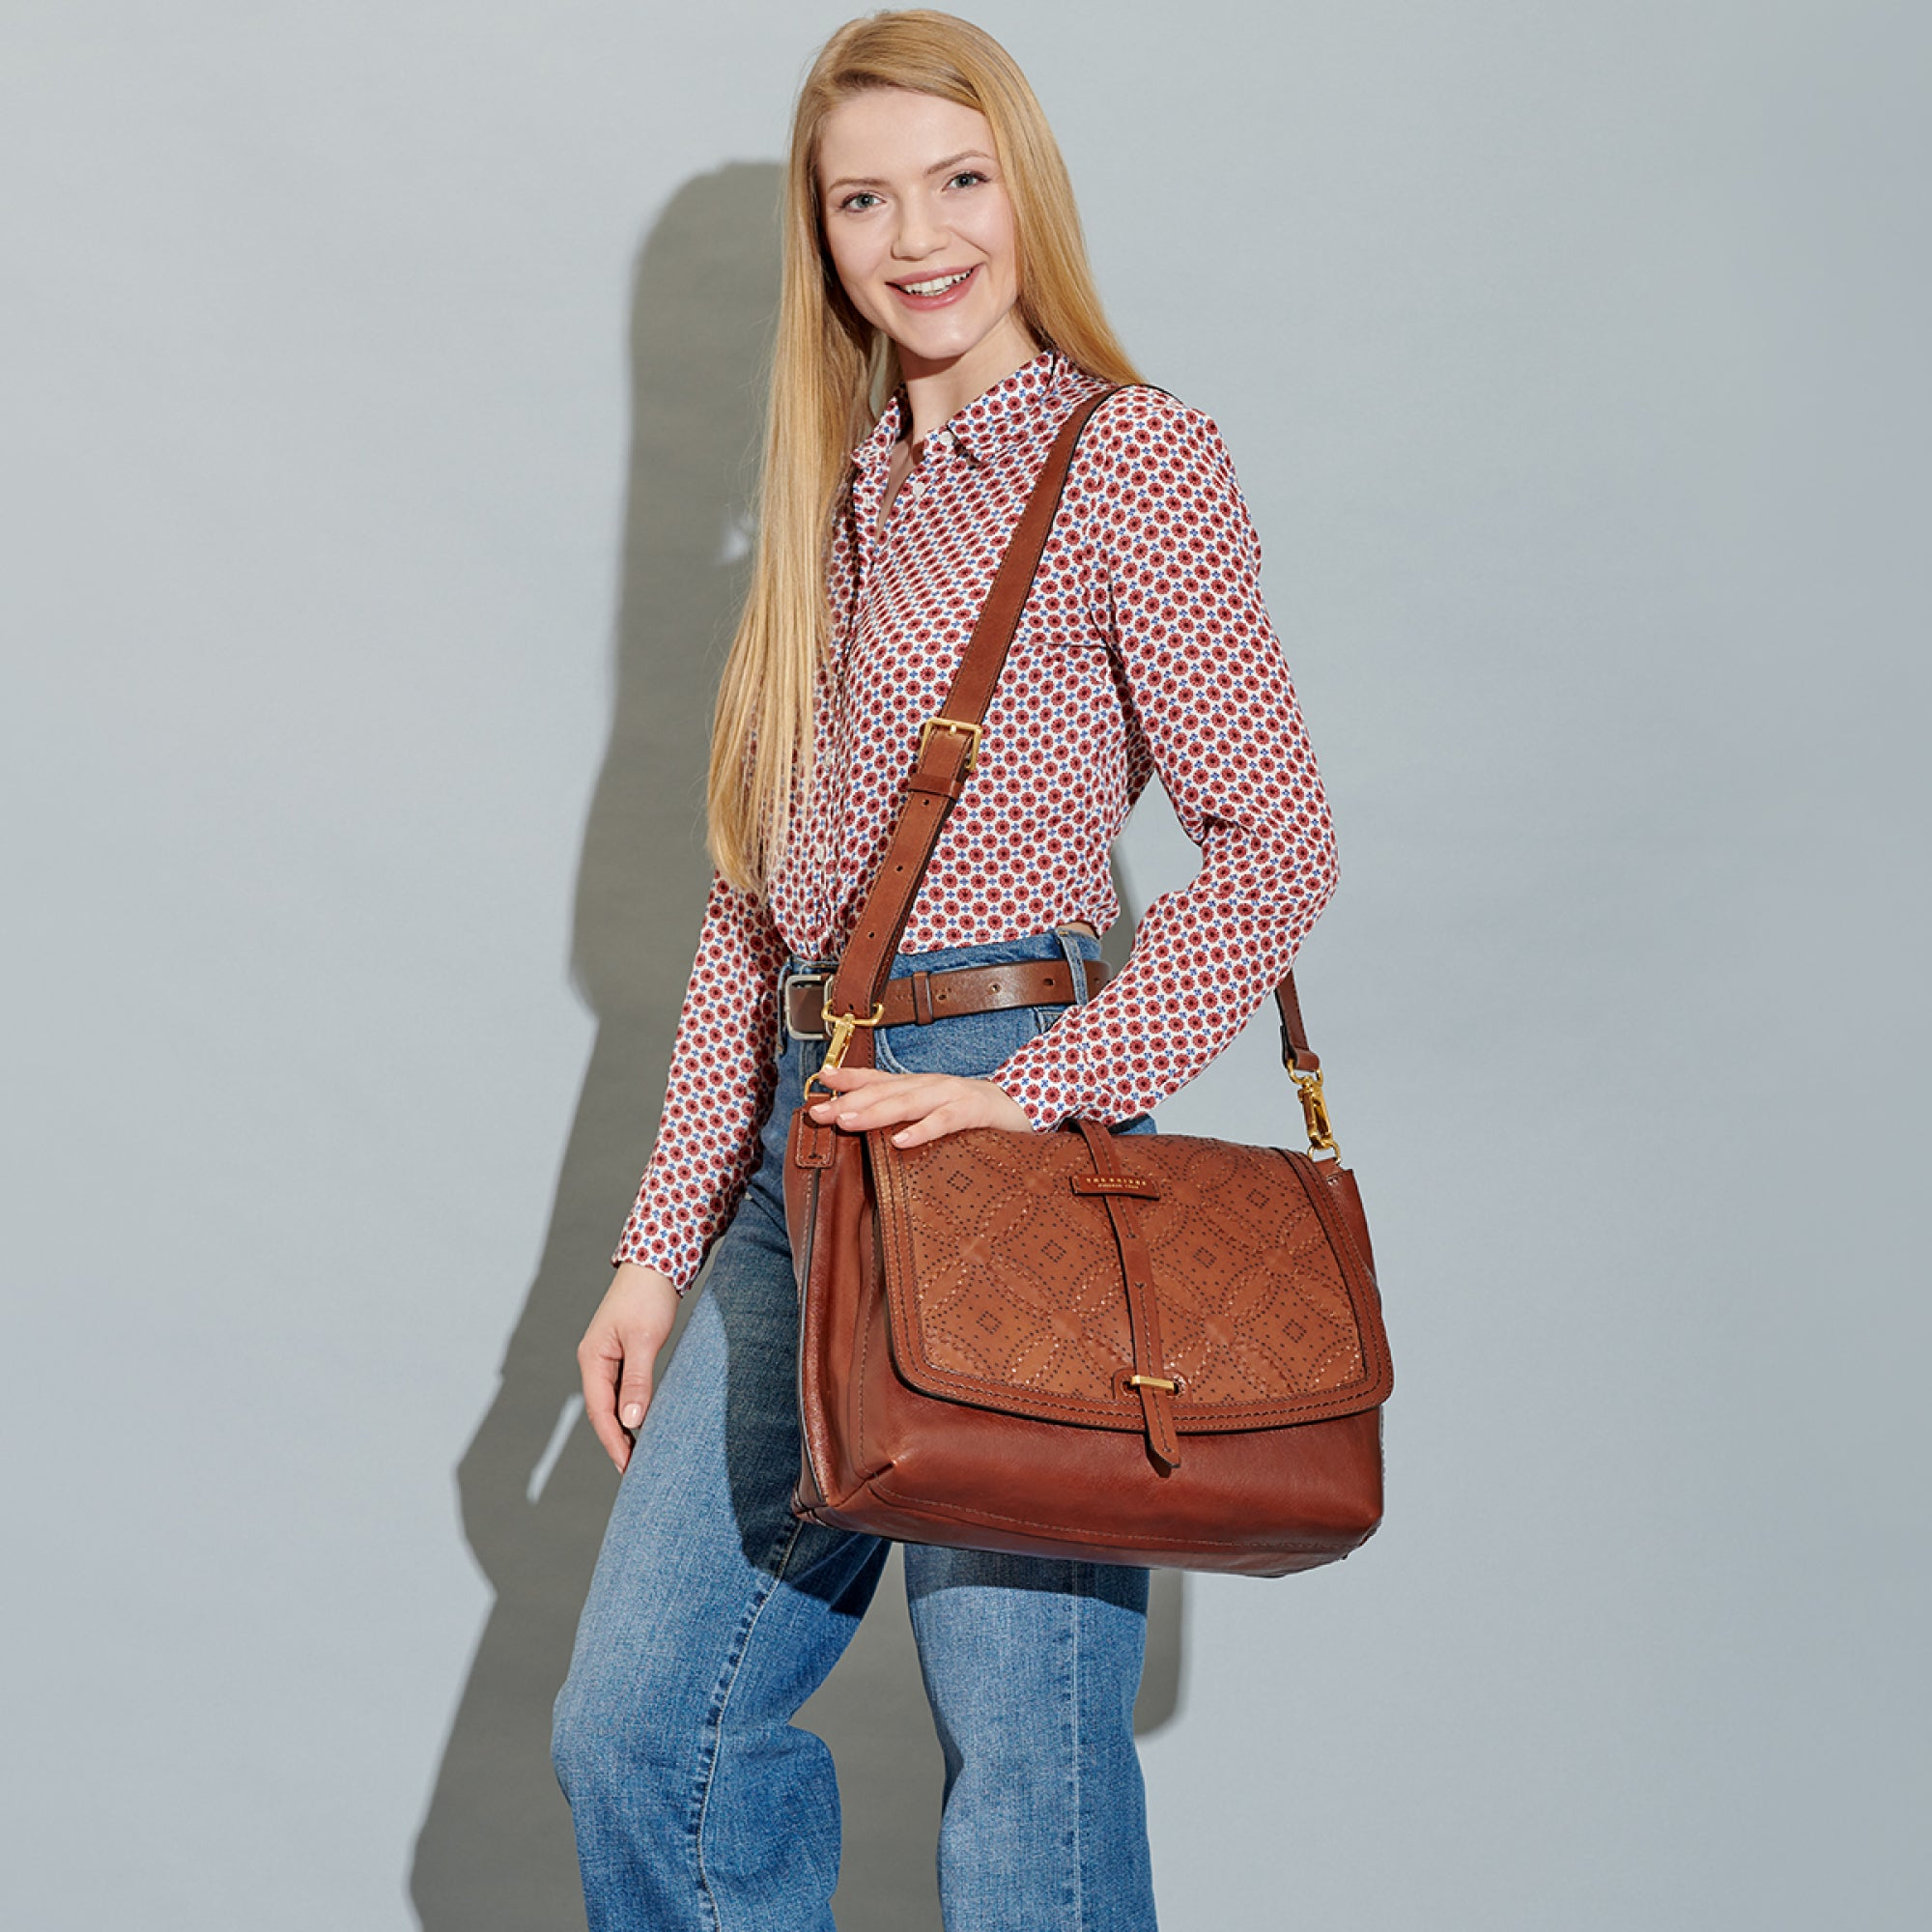 The Bridge Bags Double Function Cerboli Bag for Ladies in Brown